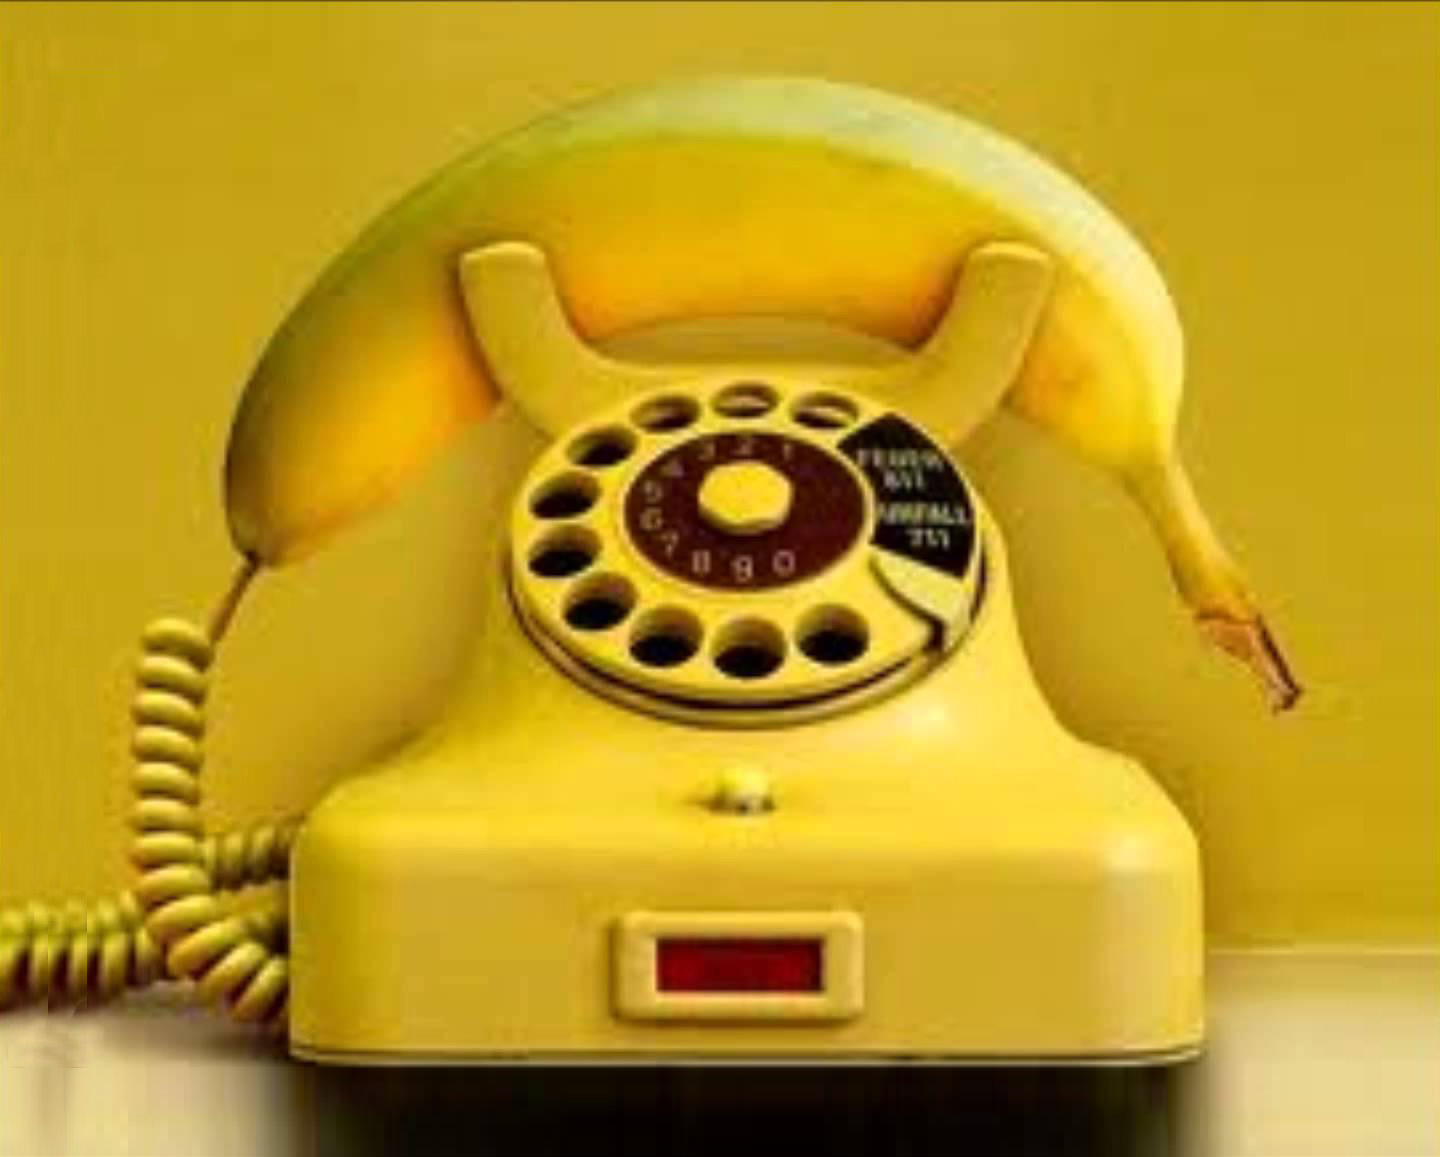 Contact by phone?